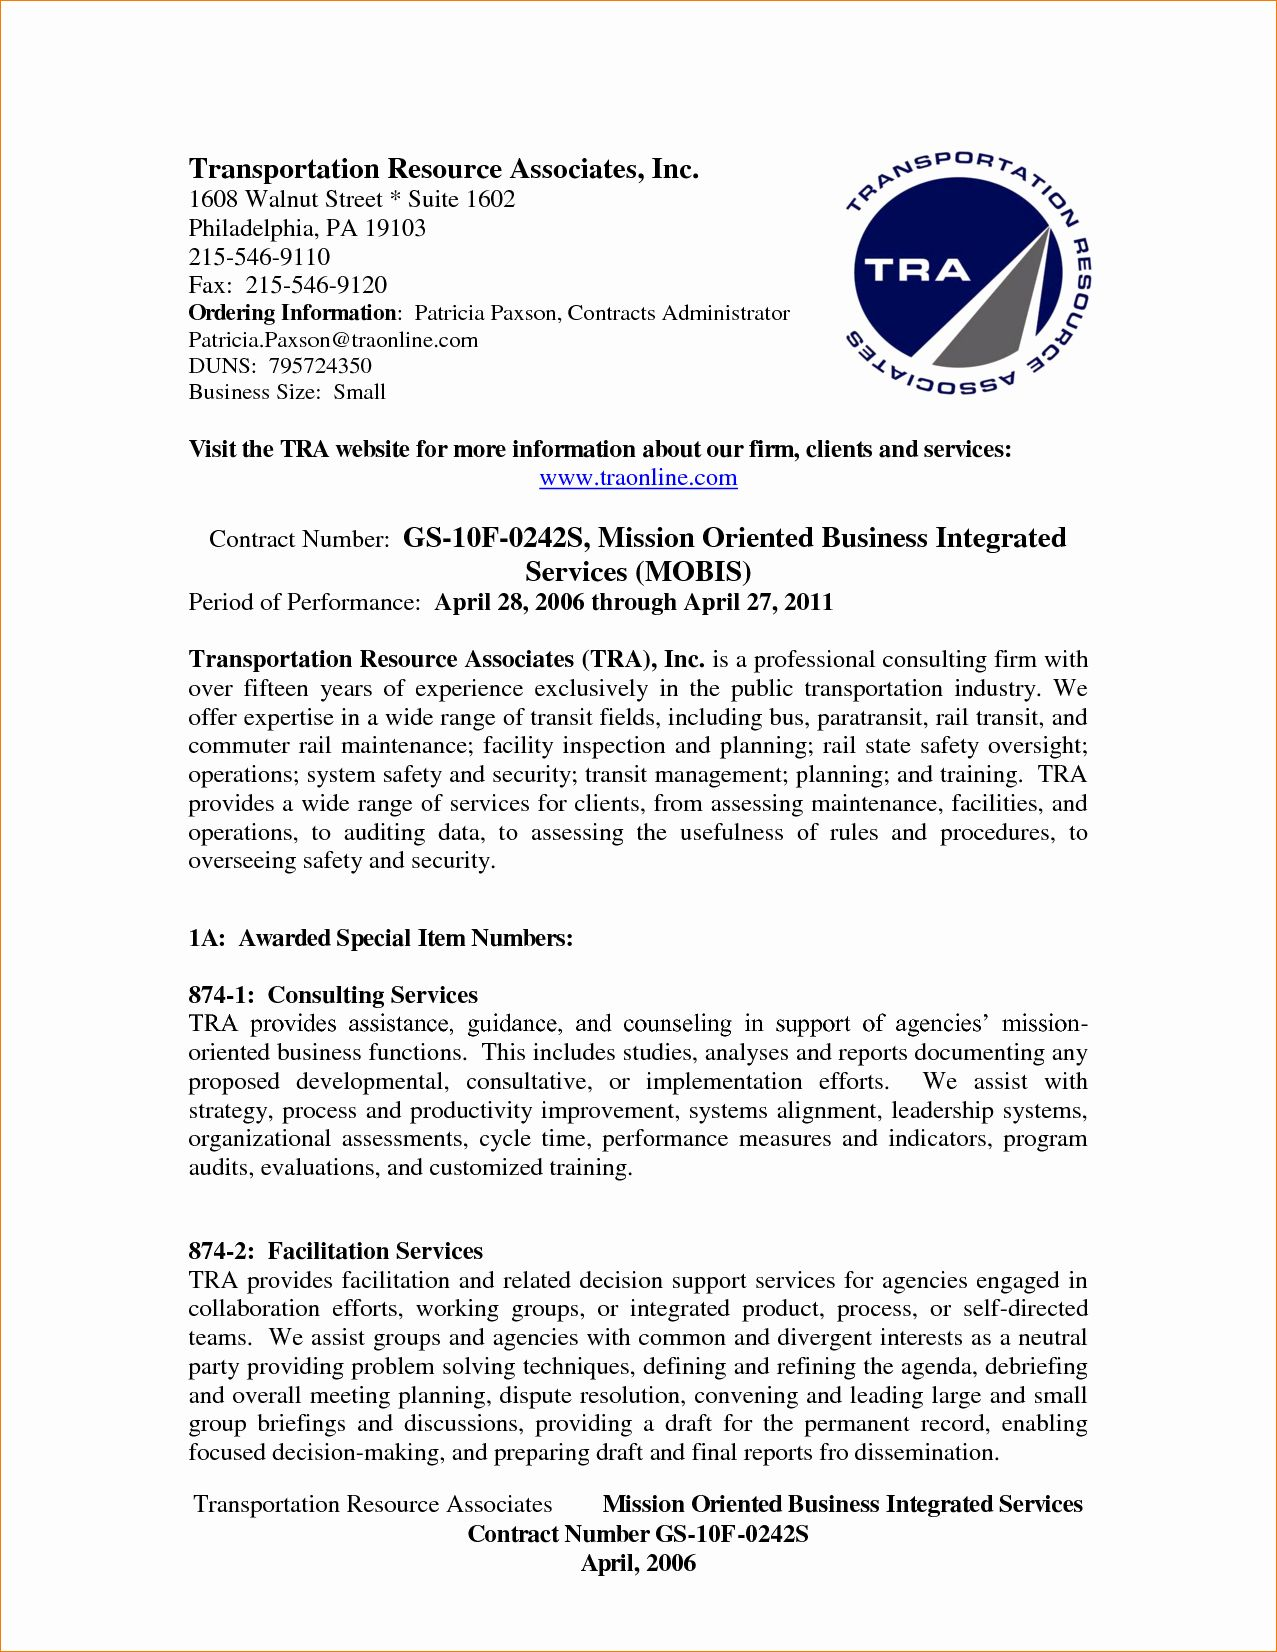 Template For Consulting Proposal Inspirational Proposal Consulting Proposal Template Proposal Templates Business Proposal Template Proposal Letter Human resources consulting proposal template